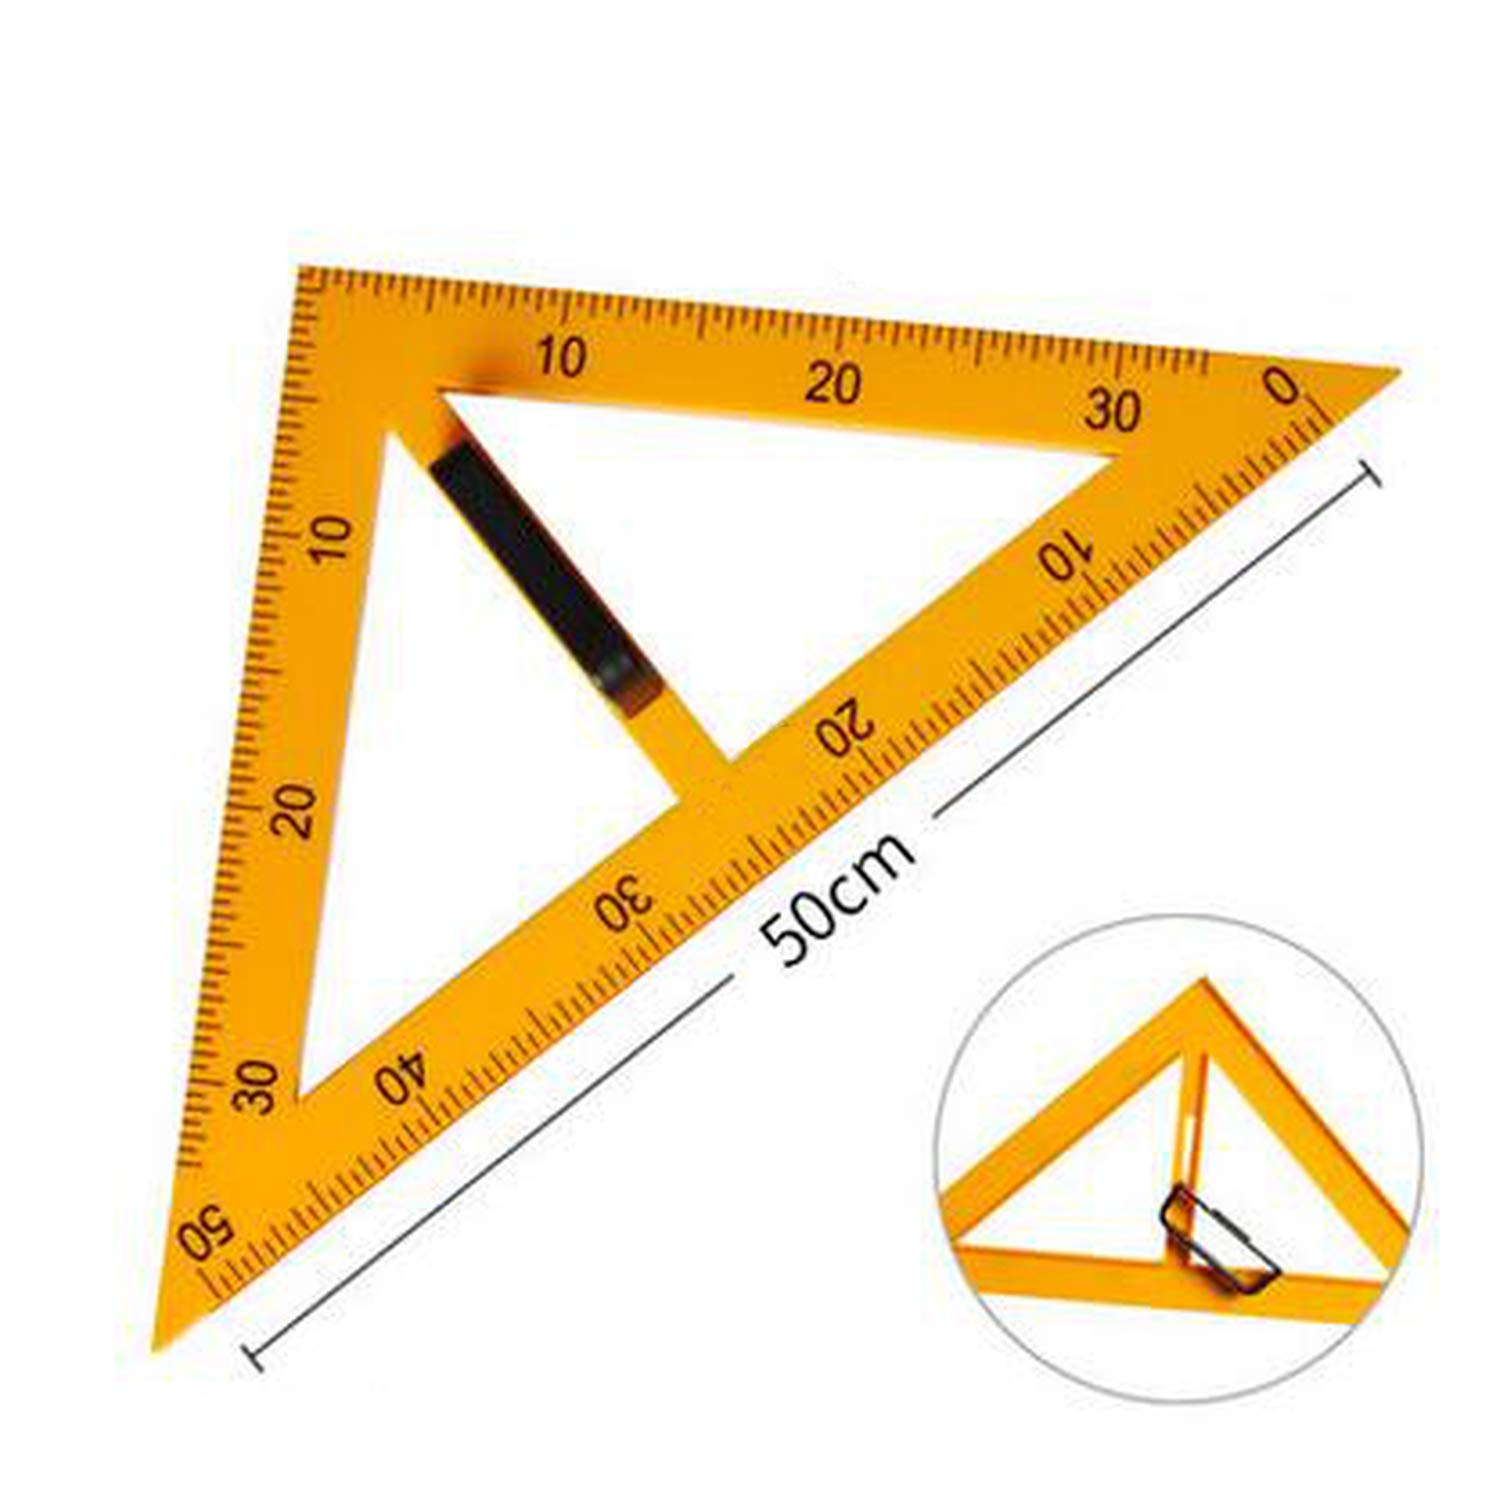 The Drawing and Making Tool for The Plastic Teacher is A Set of Three Dimensional Measuring Tools,Yellow by Yeaha drafting-tool-sets